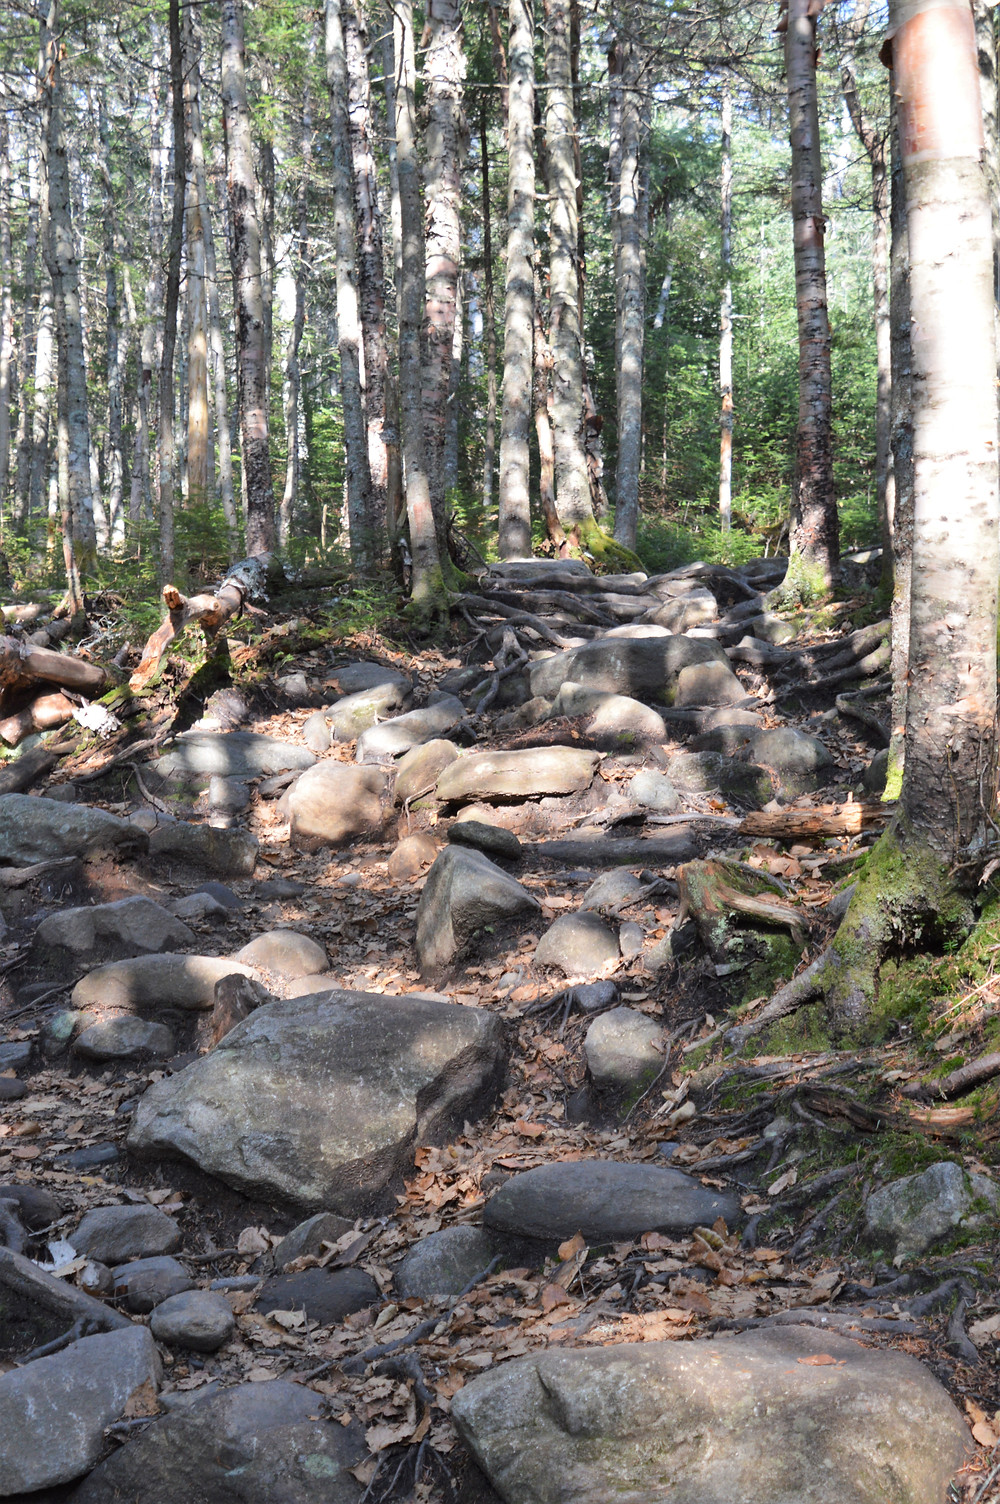 Rocks and roots lined the trail with signs of erosion